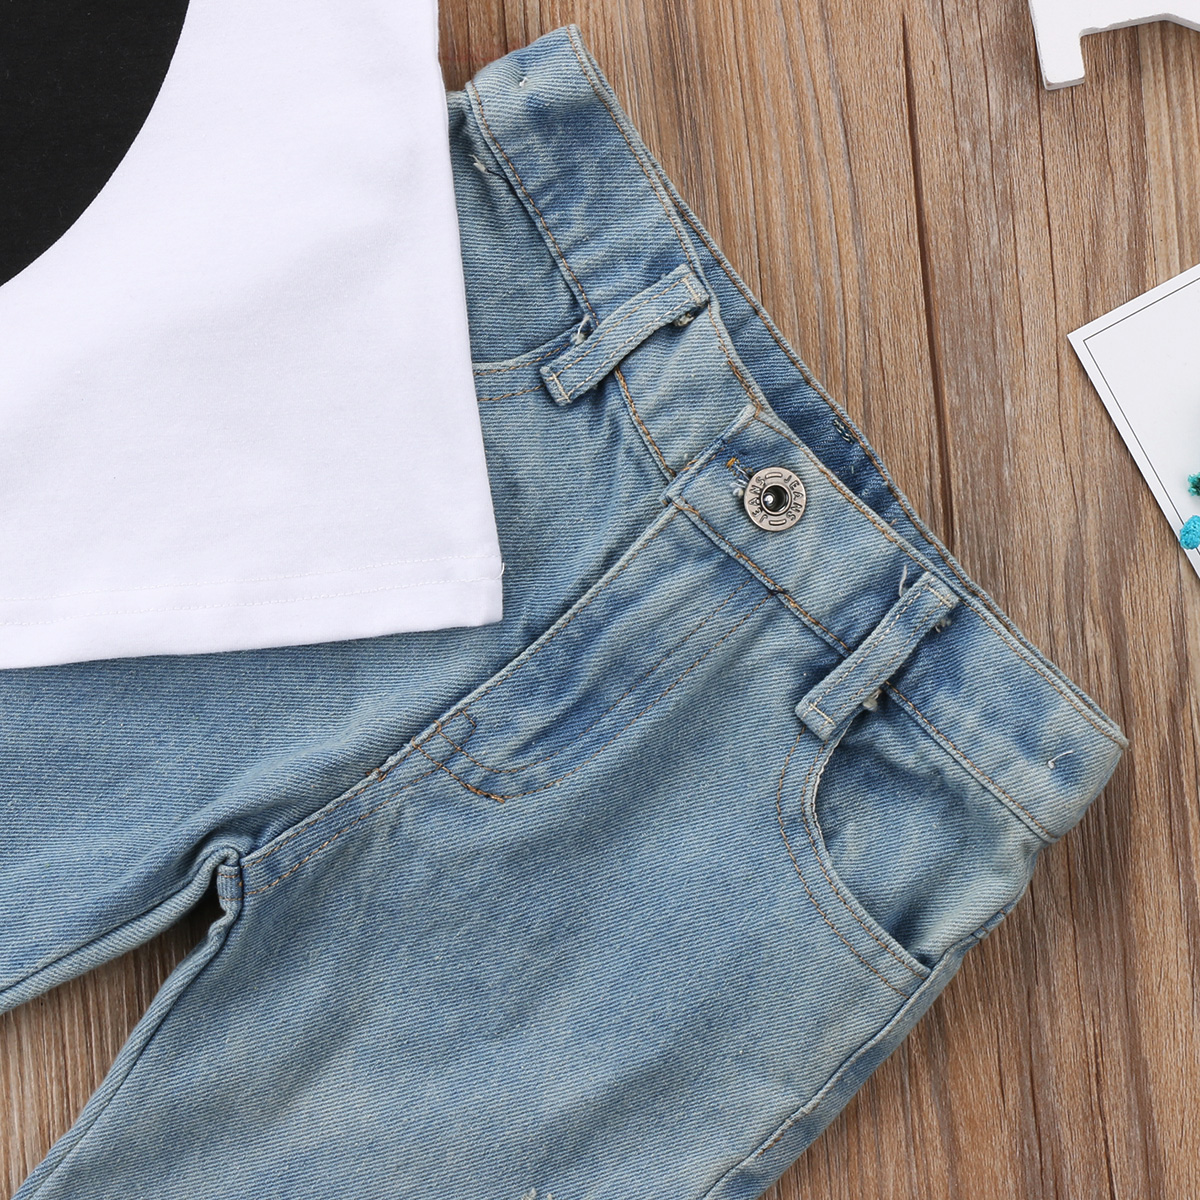 2Pcs Fashion Girls Clothing Toddler Baby Kids Girl Vest Sleeveless Top Tassels Jeans Denim Pants Outfits Set Clothes 0-5T